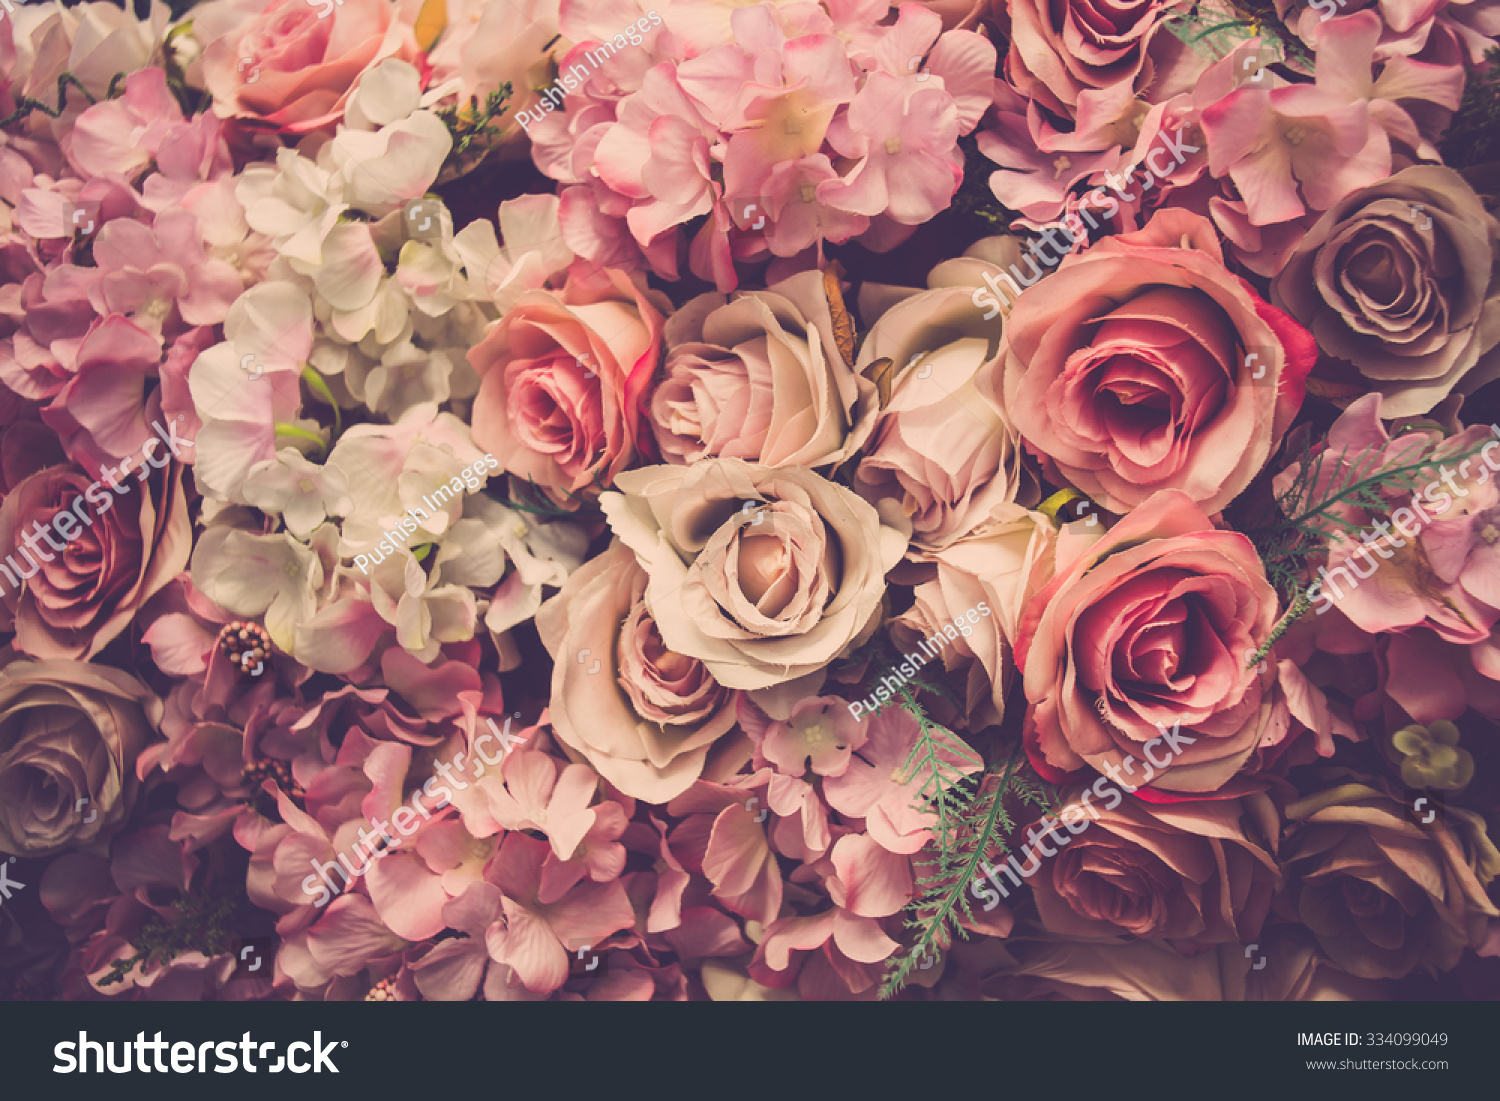 Pin Pink-rose-twitter-background on Pinterest